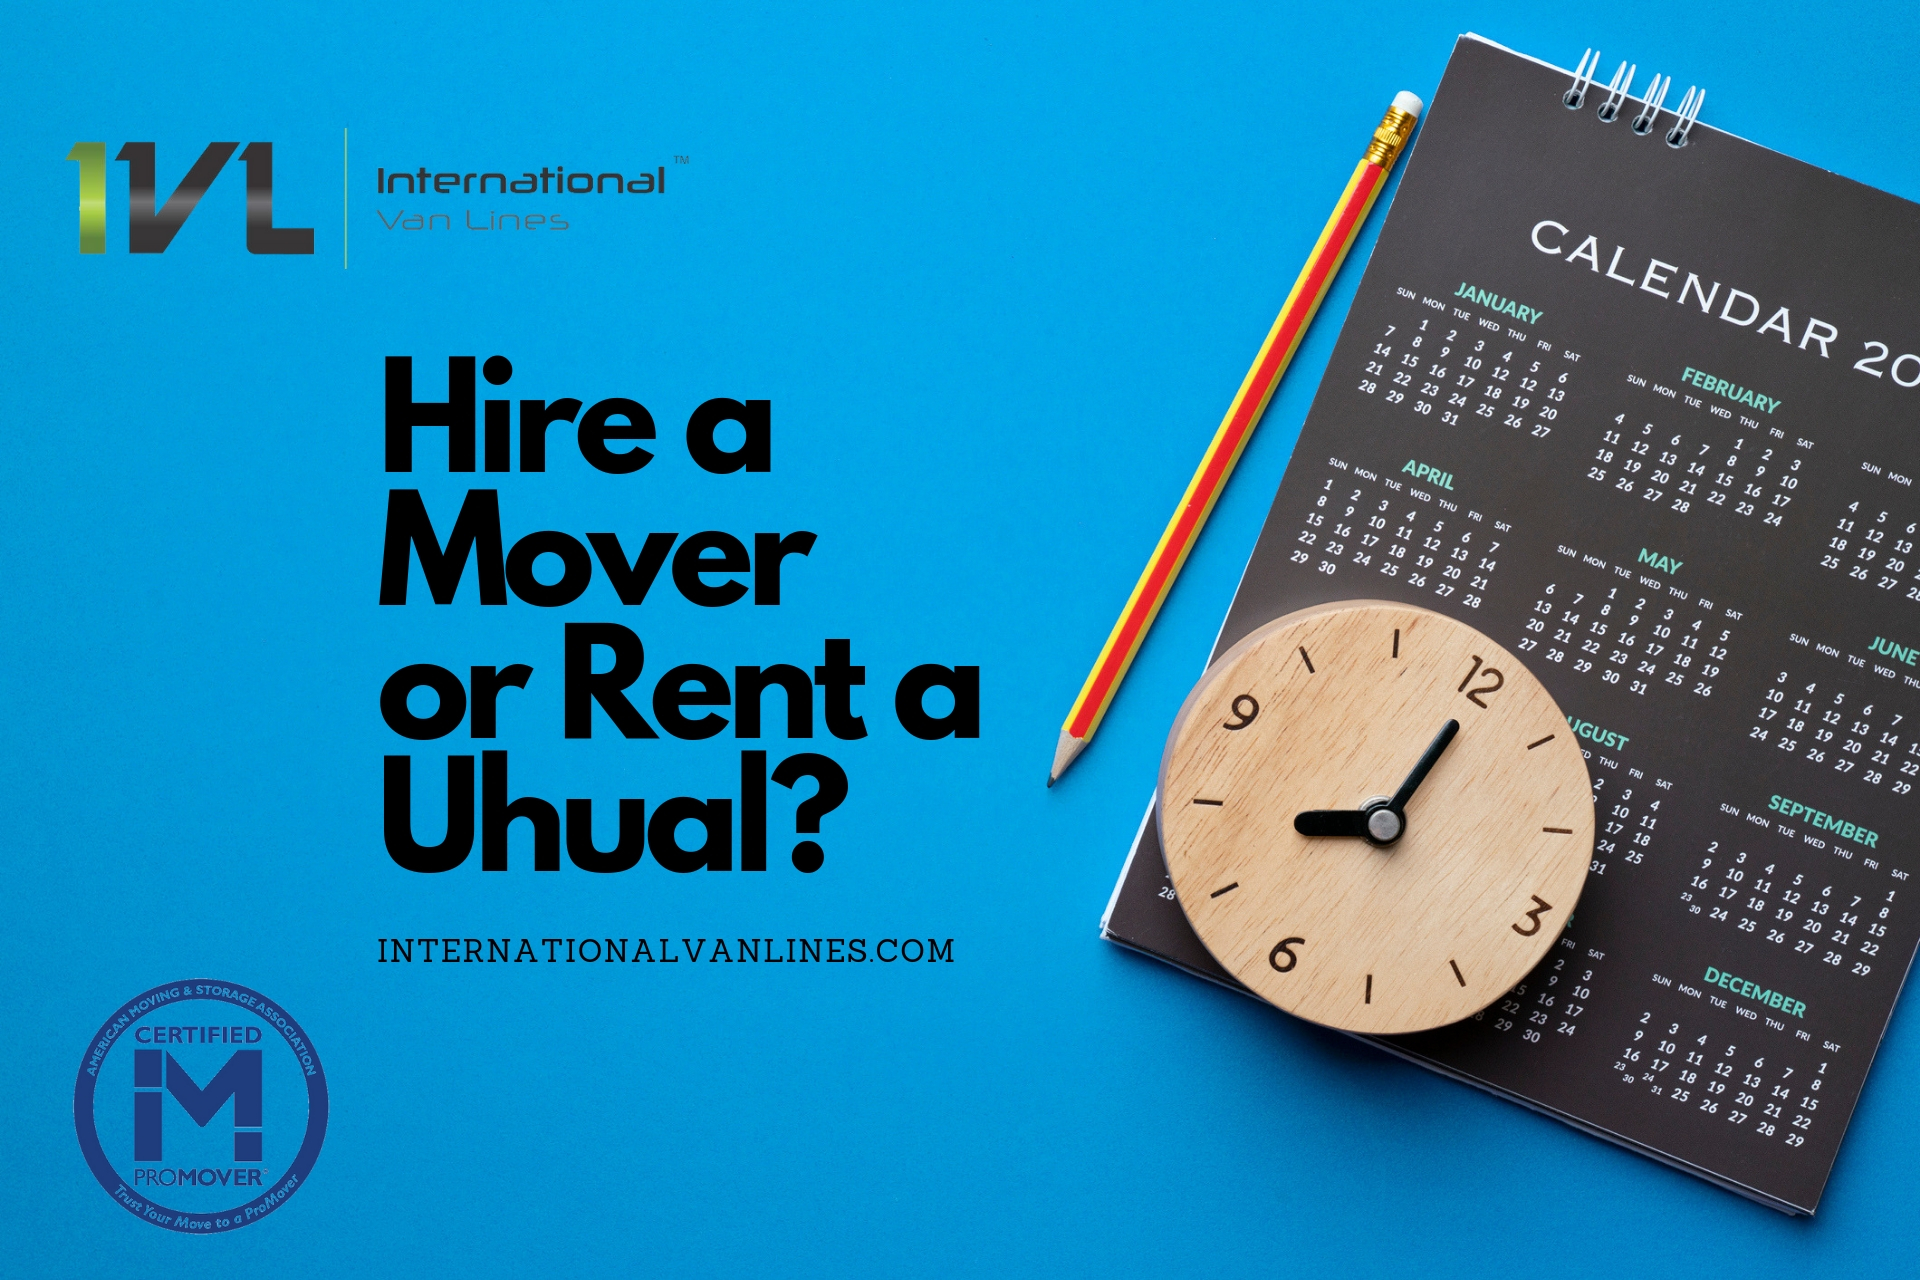 Hiring a mover vs renting a uhual